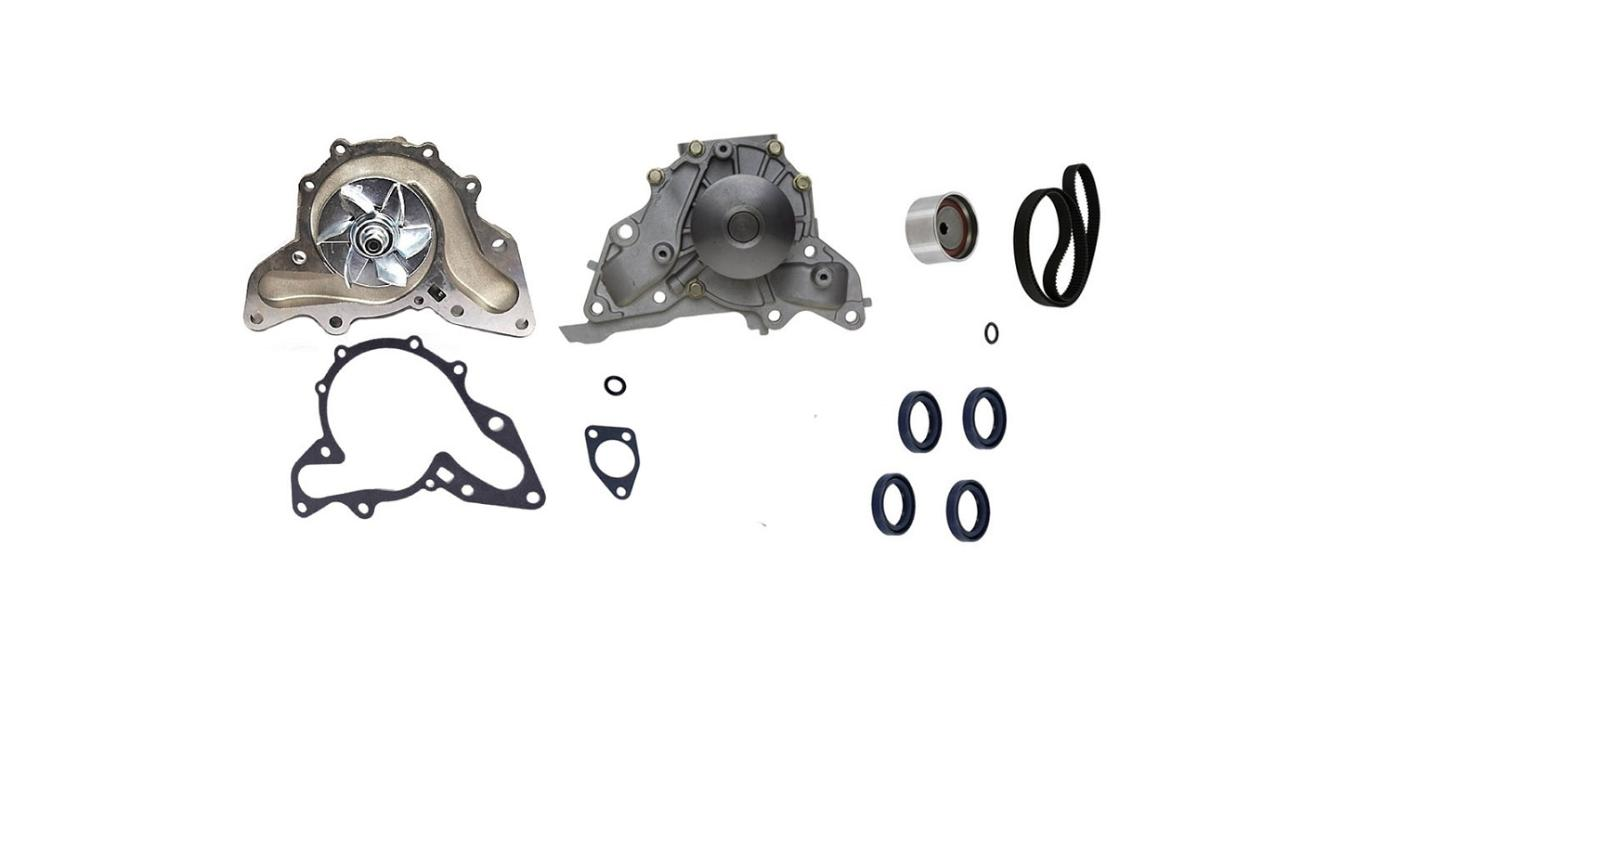 03 06 Sorento 3 5l Ustk323a Engine Timing Belt Kit With